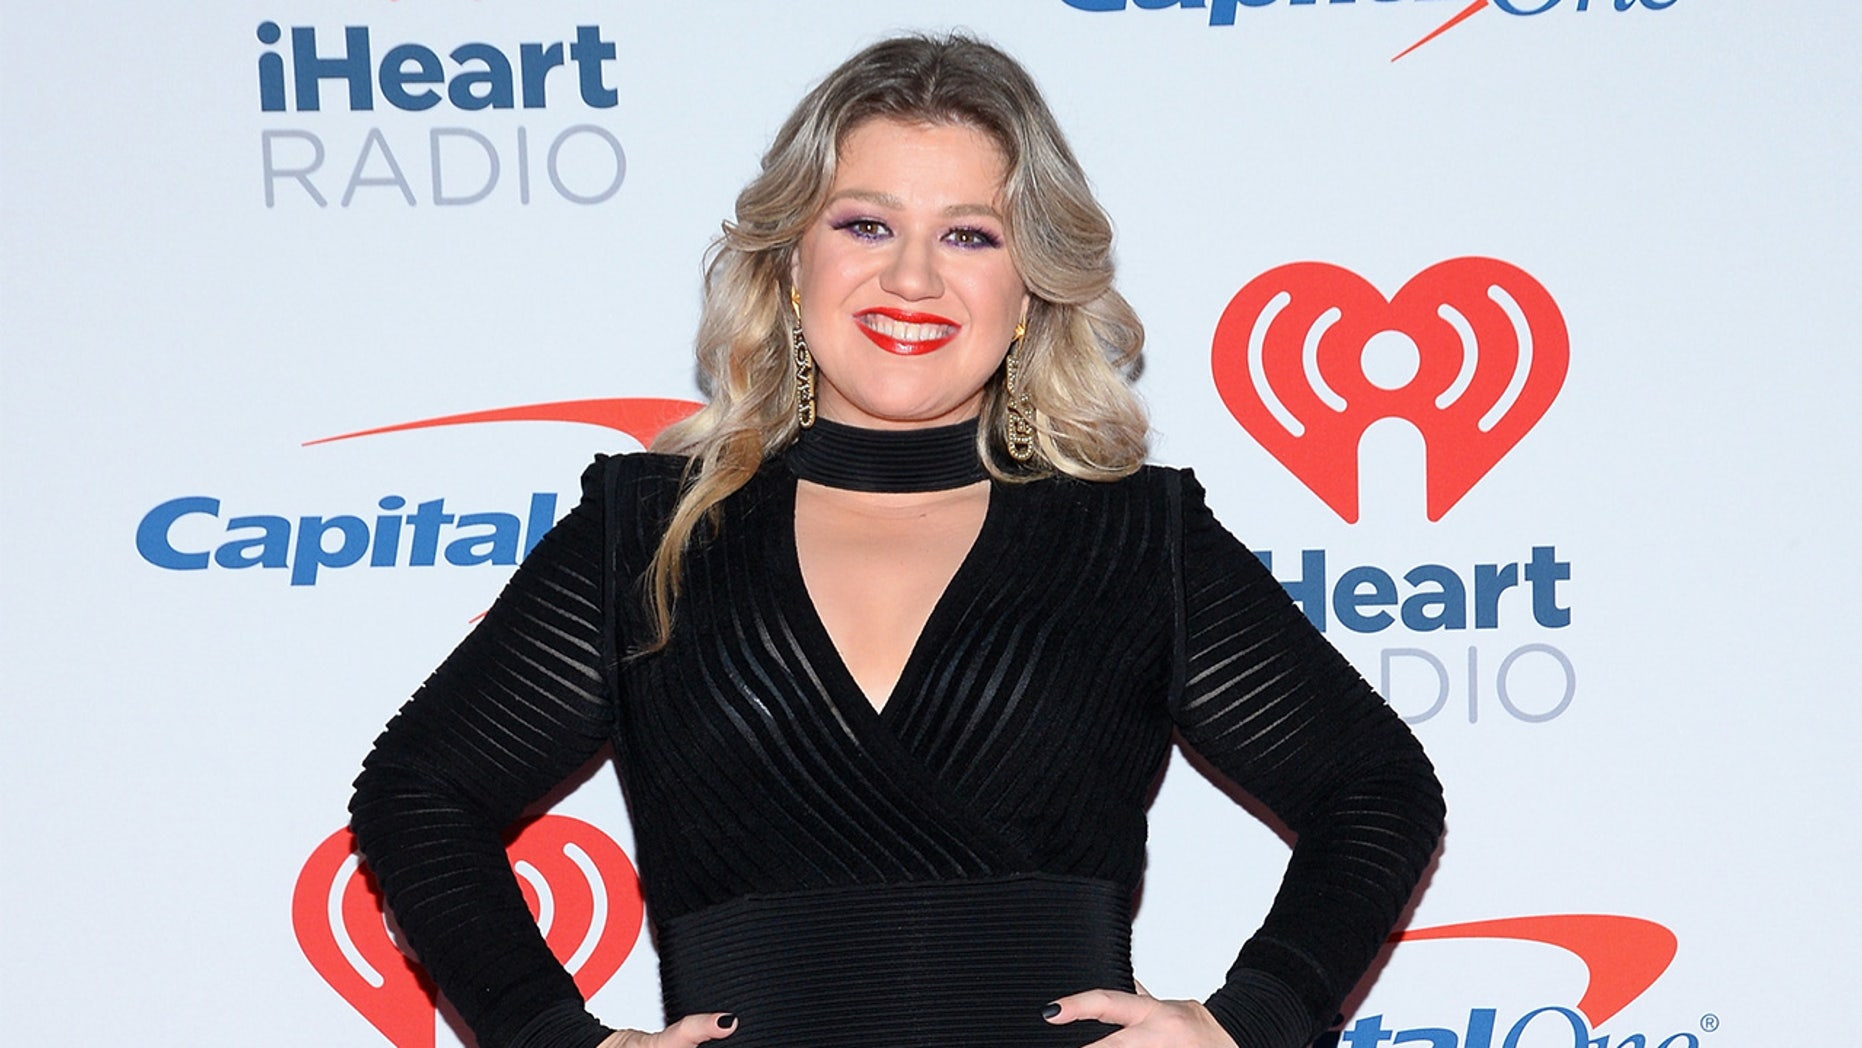 Kelly Clarkson pays tribute to Aretha Franklin at iHeartRadio ...